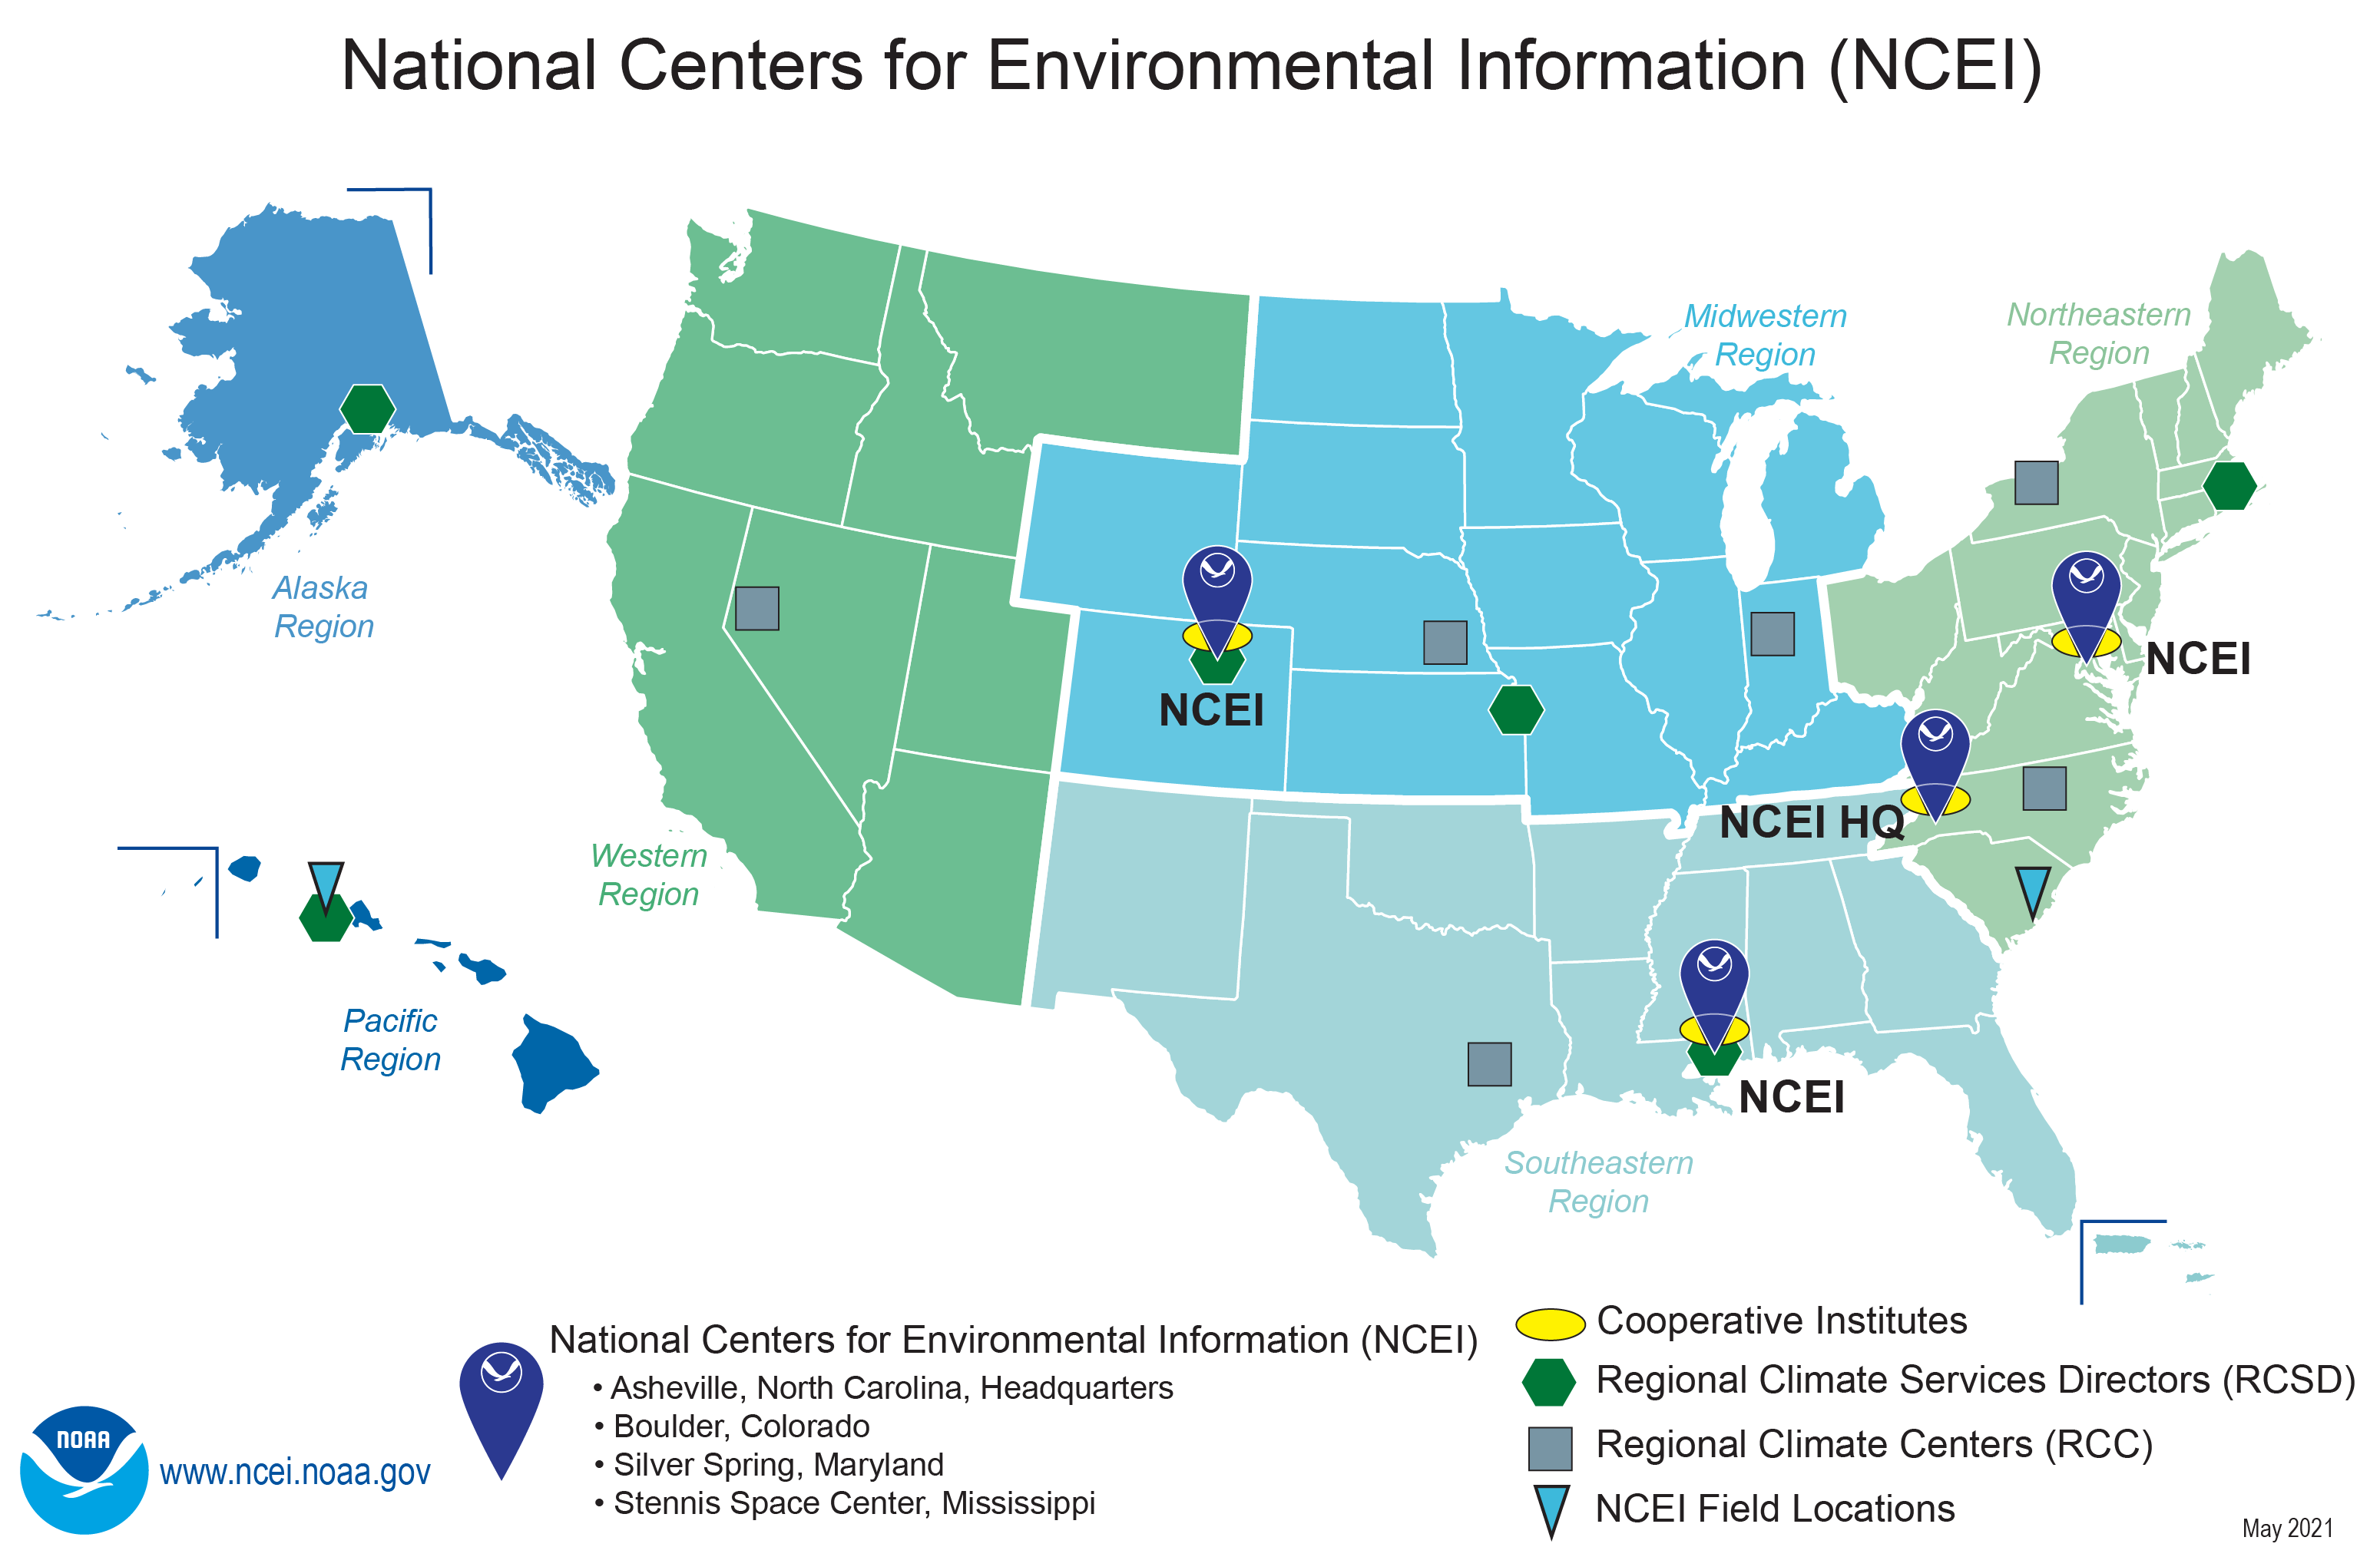 Map of NCEI locations, Cooperative Institutes, Regional Climate Services Directors and Climate Centers